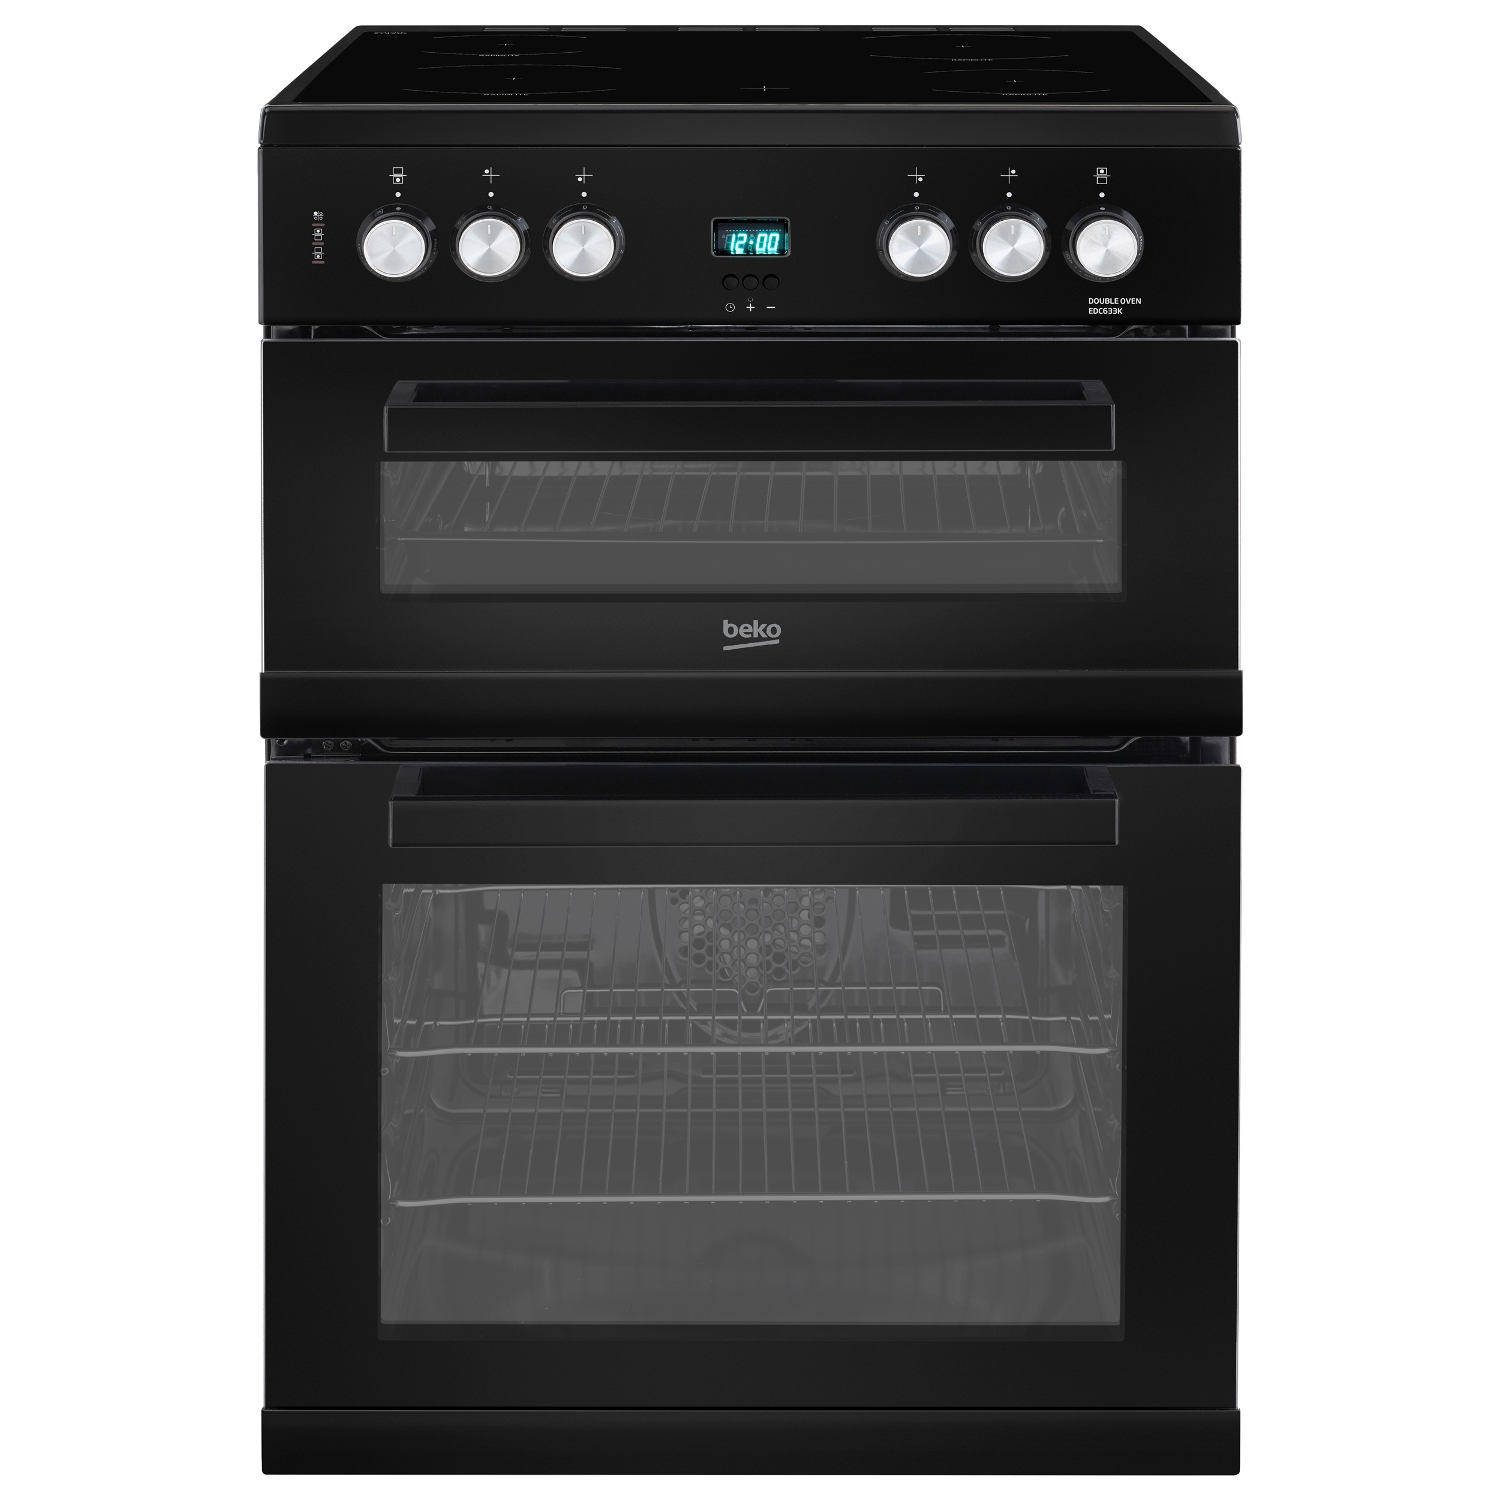 beko edc633k 60cm double oven electric cooker with ceramic. Black Bedroom Furniture Sets. Home Design Ideas